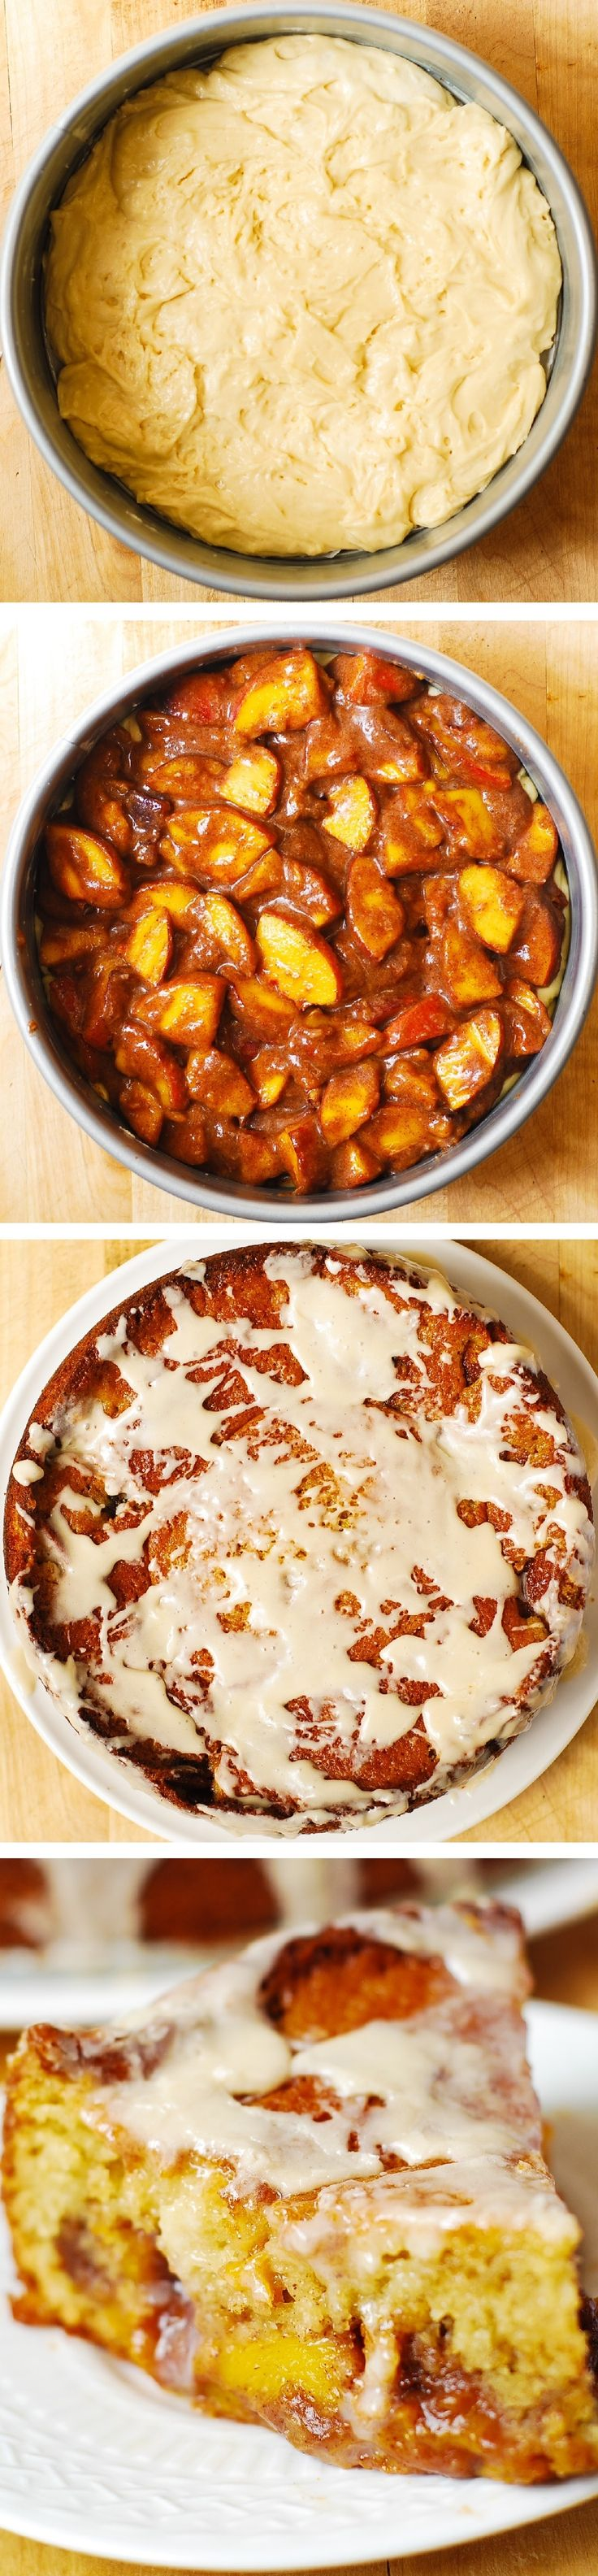 Cake with Vanilla Glaze - lots of peaches with brown sugar, cinnamon ...